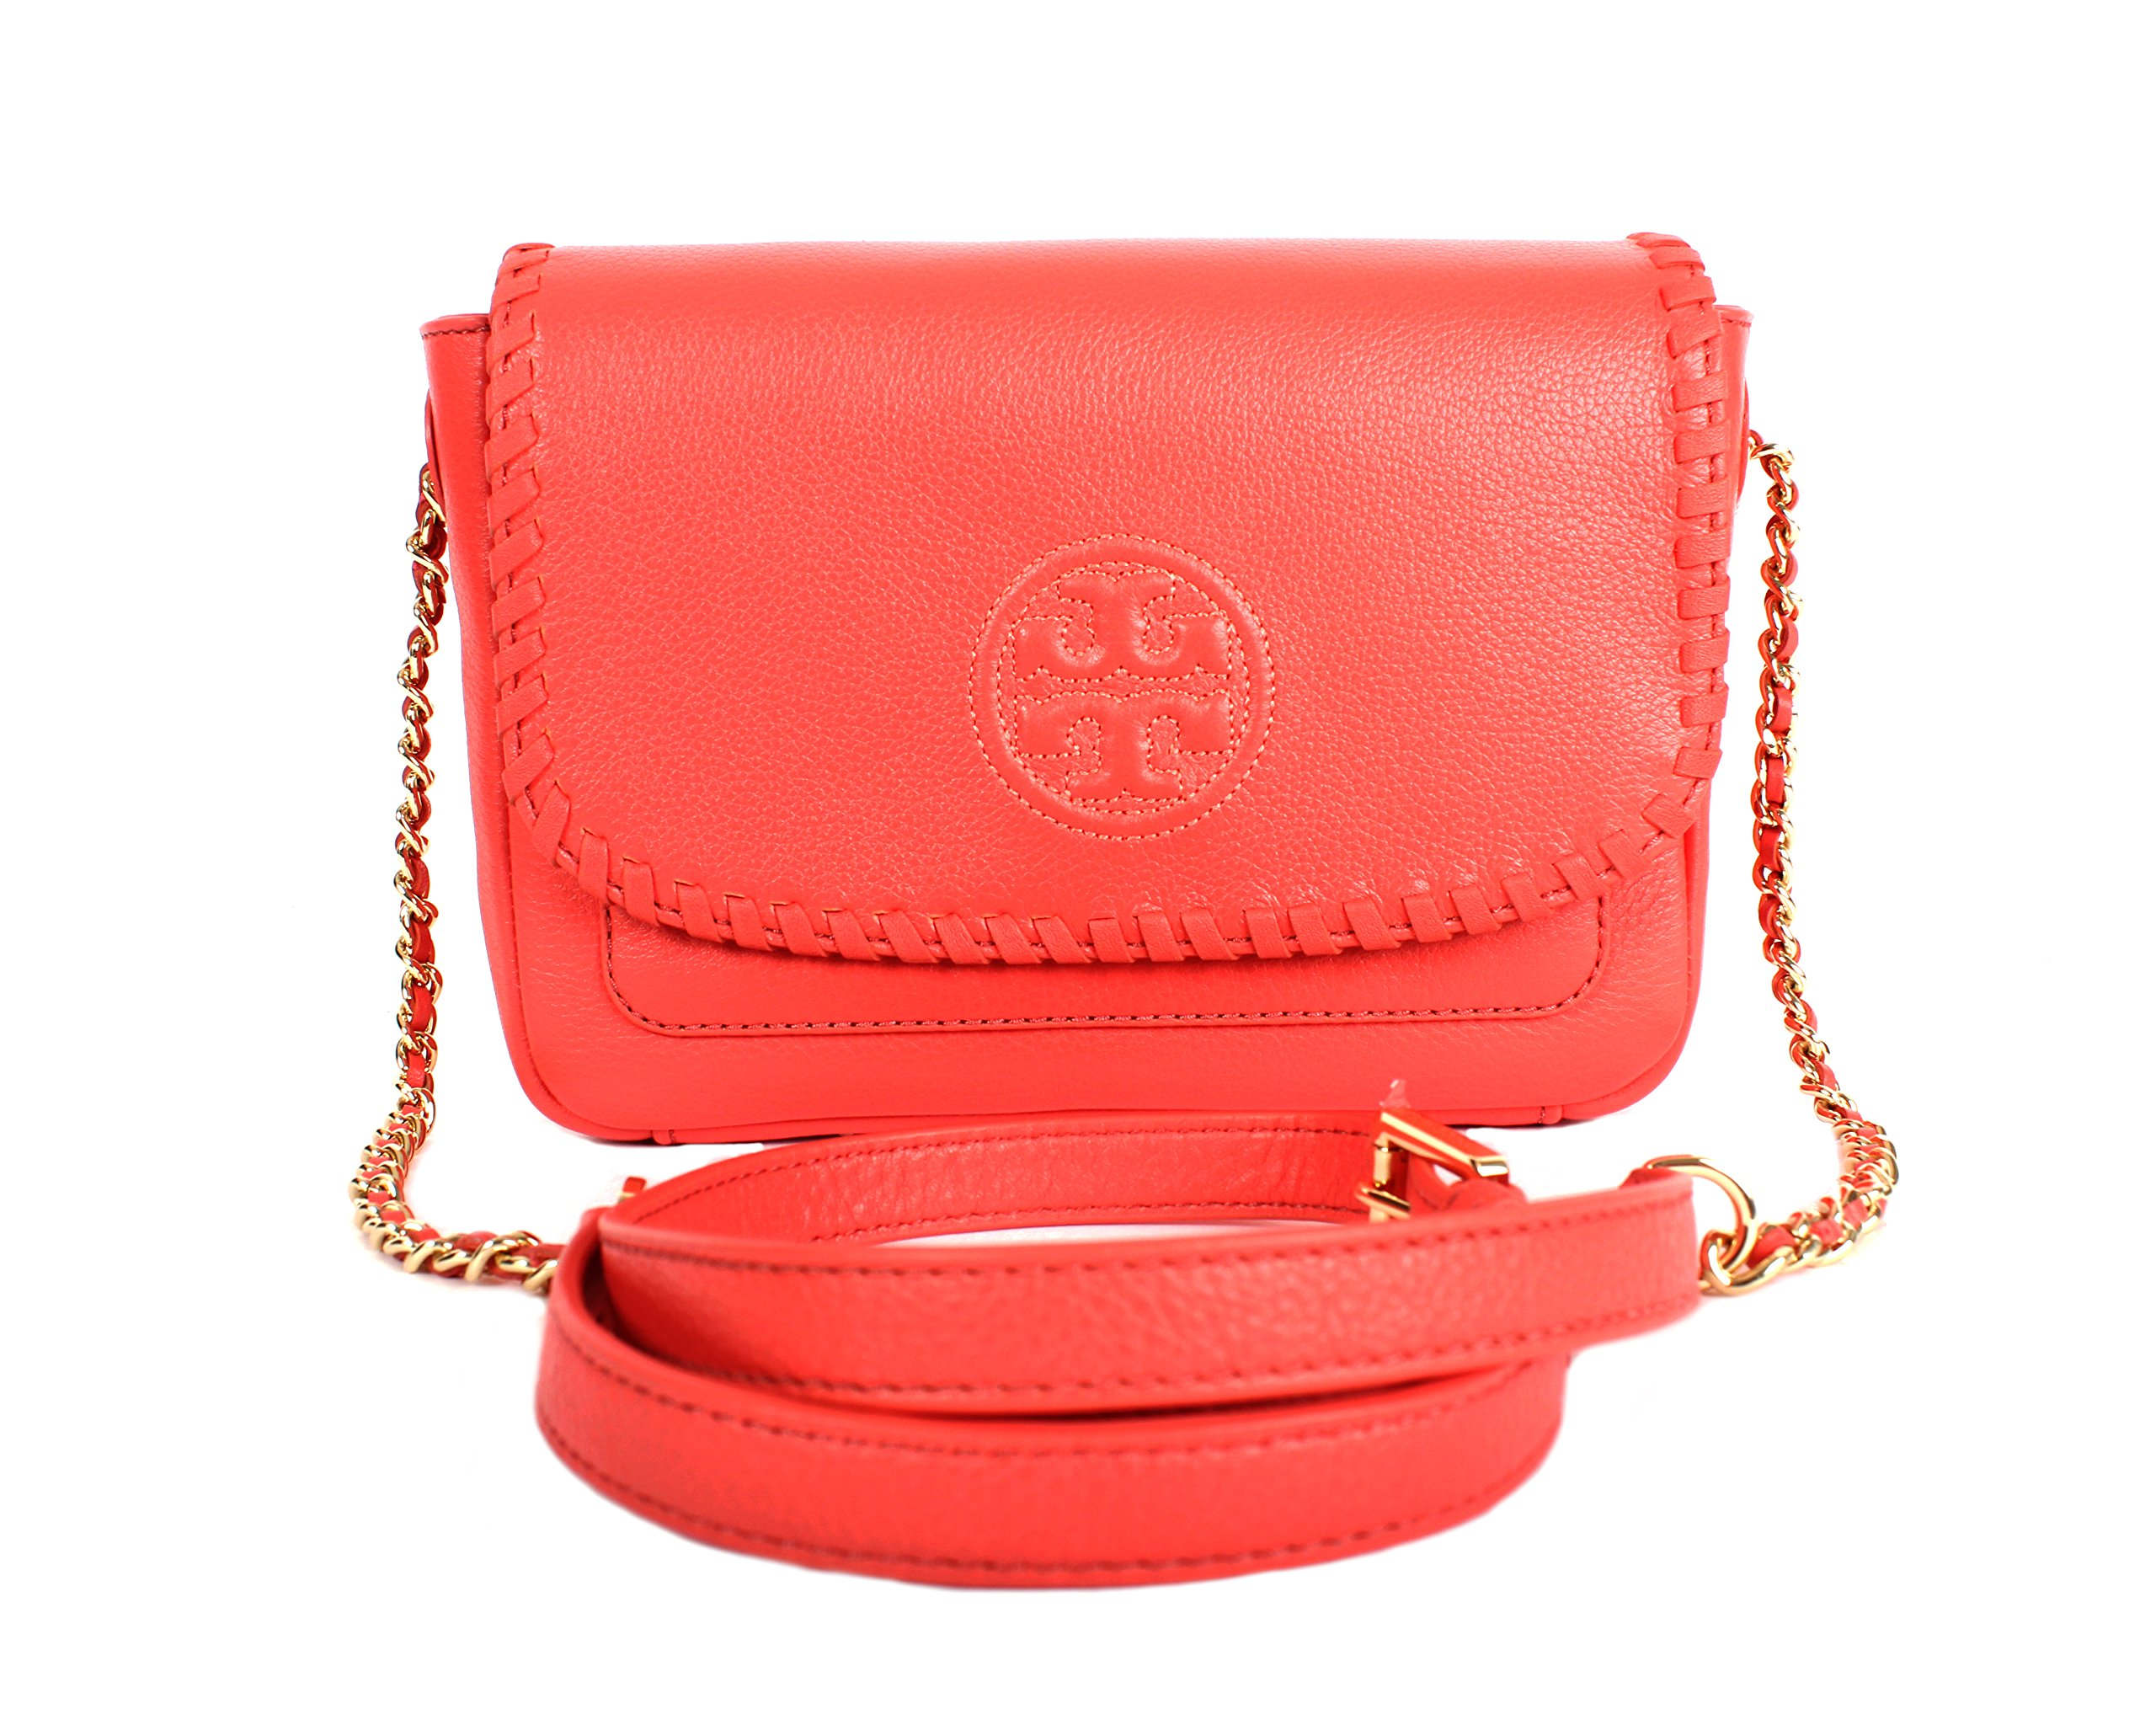 Tory Burch Marion Mini Bag, Spiced Coral, Style No. 40804 by Tory Burch